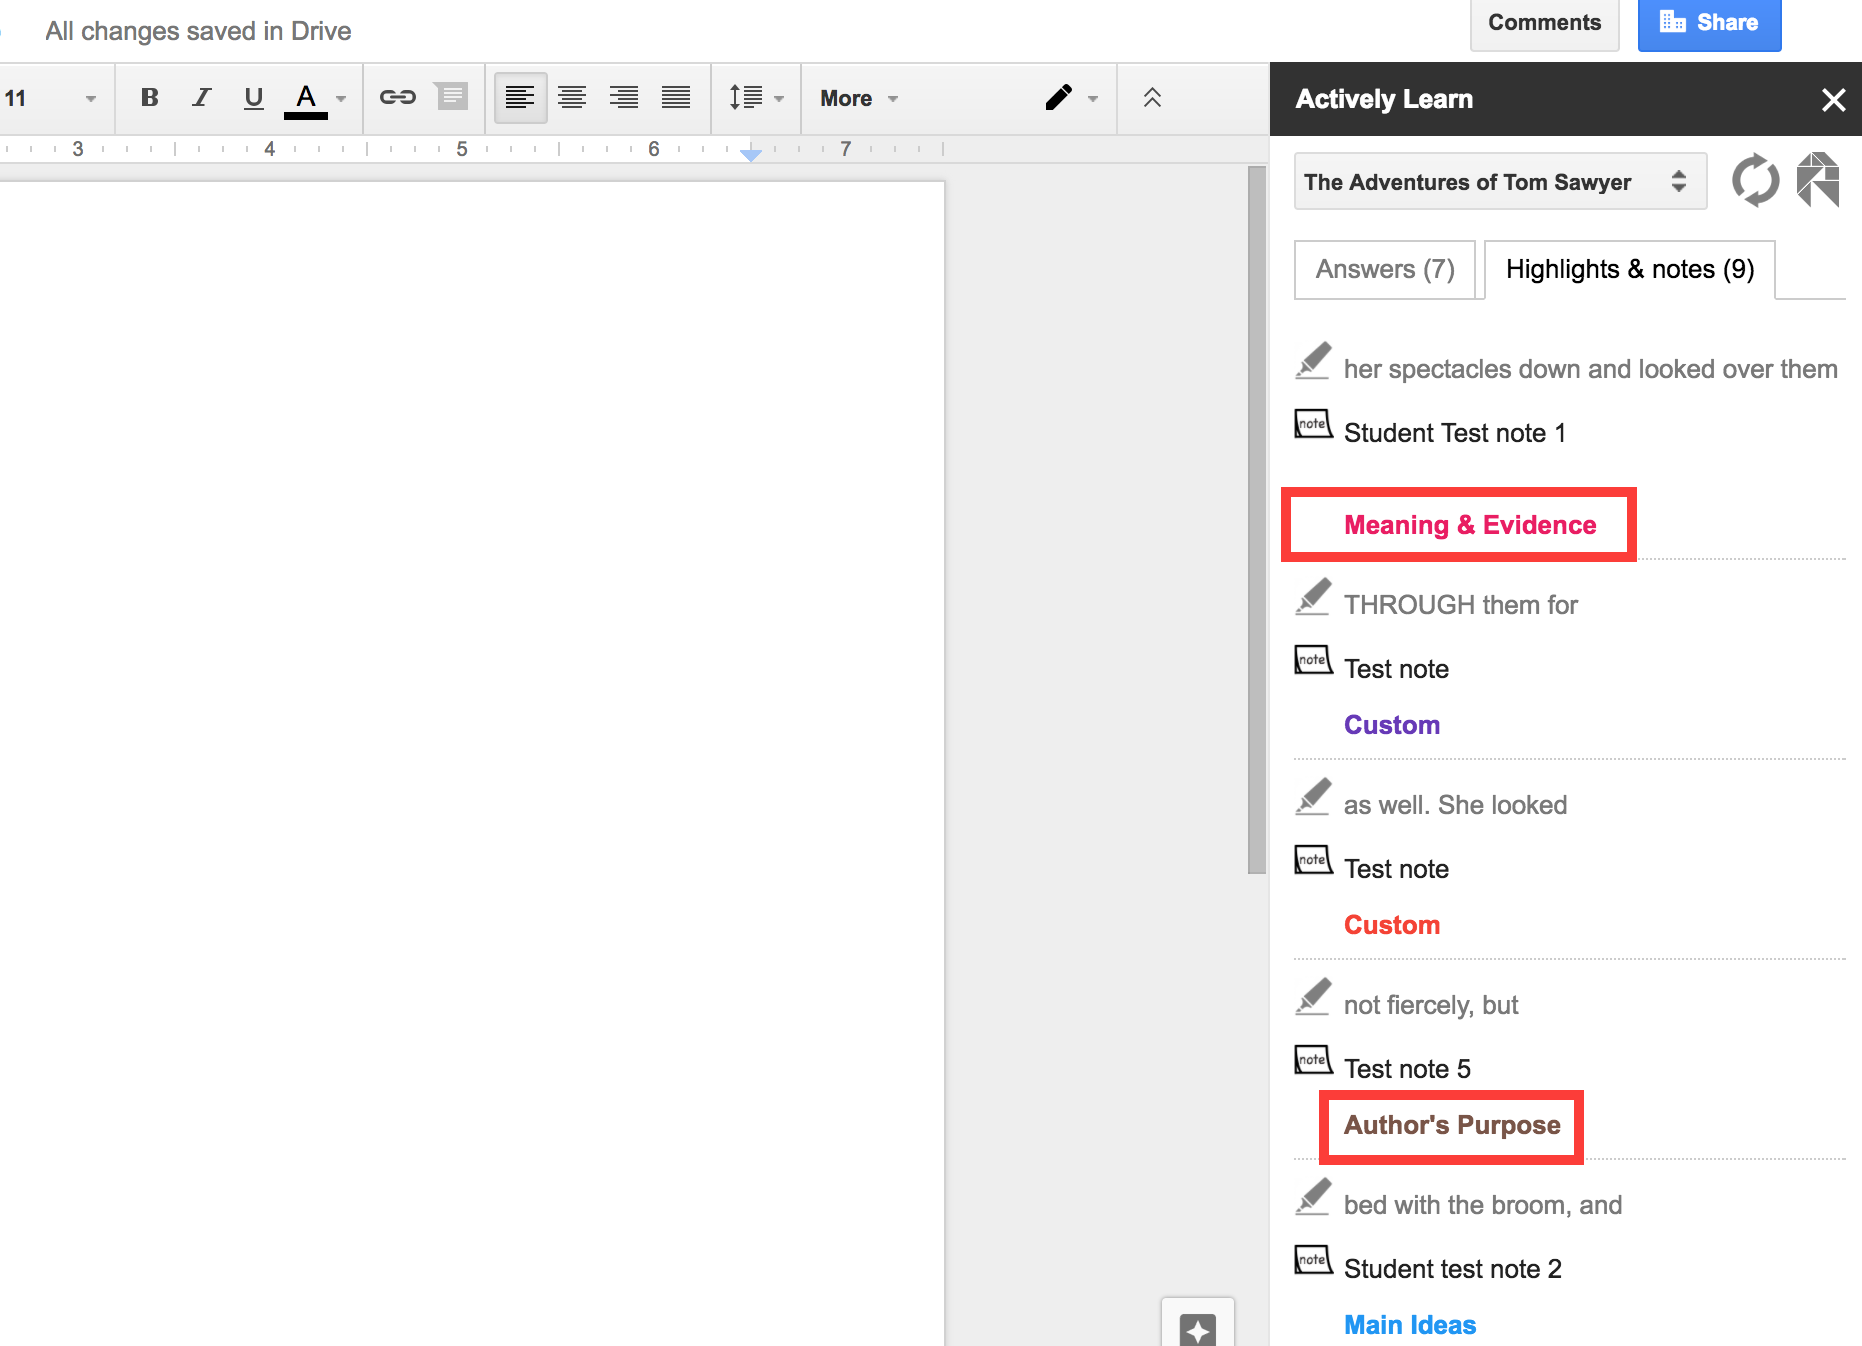 Actively Learn - Google Docs add-on